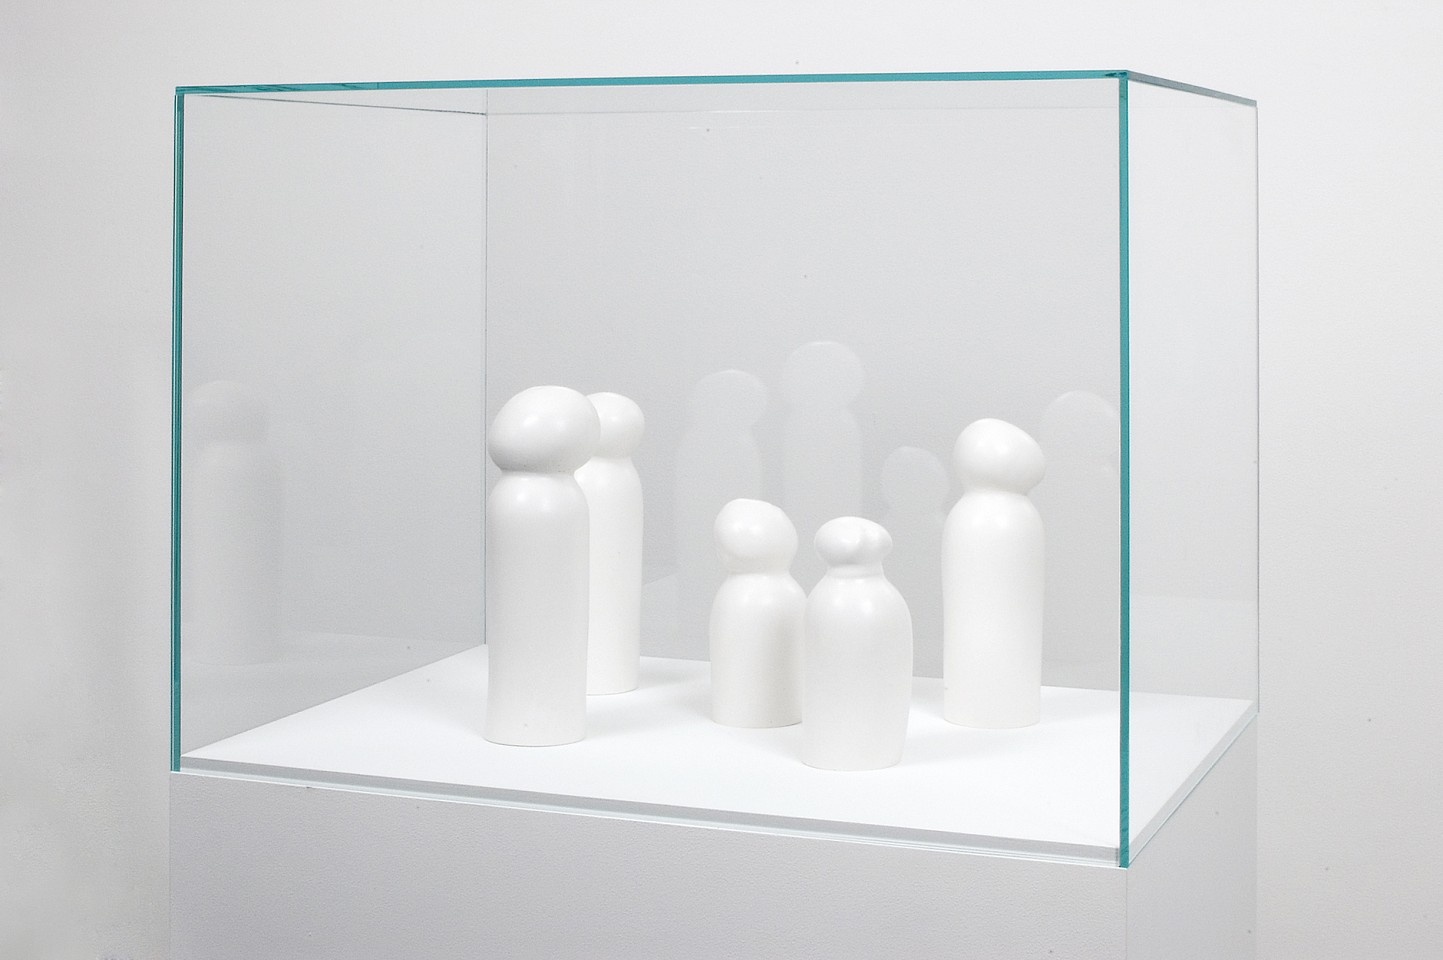 Victor Grippo ,   Anónimos  ,  1998-2001     painted plaster in five parts, painted wooden base, vitrine and text     overall: 60 3/4 x 28 x 20 in/154 x 70 x 50 cm 